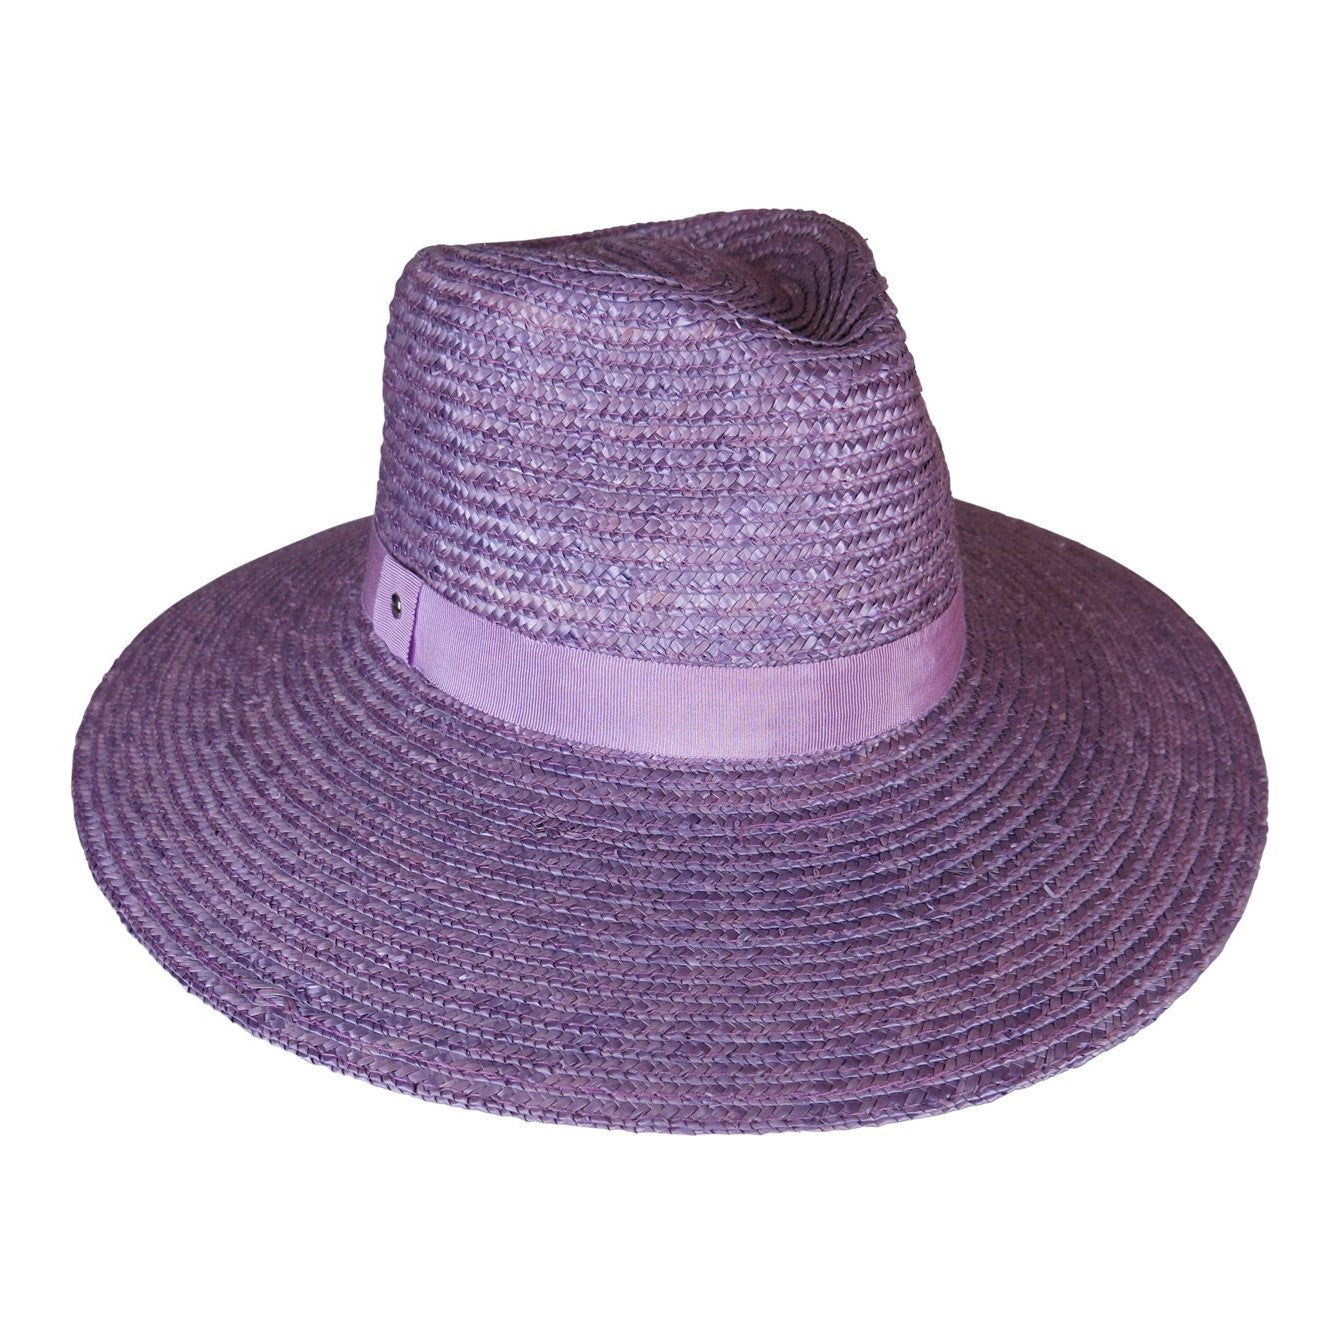 BOLOGNA // Frosted Violet Fedora